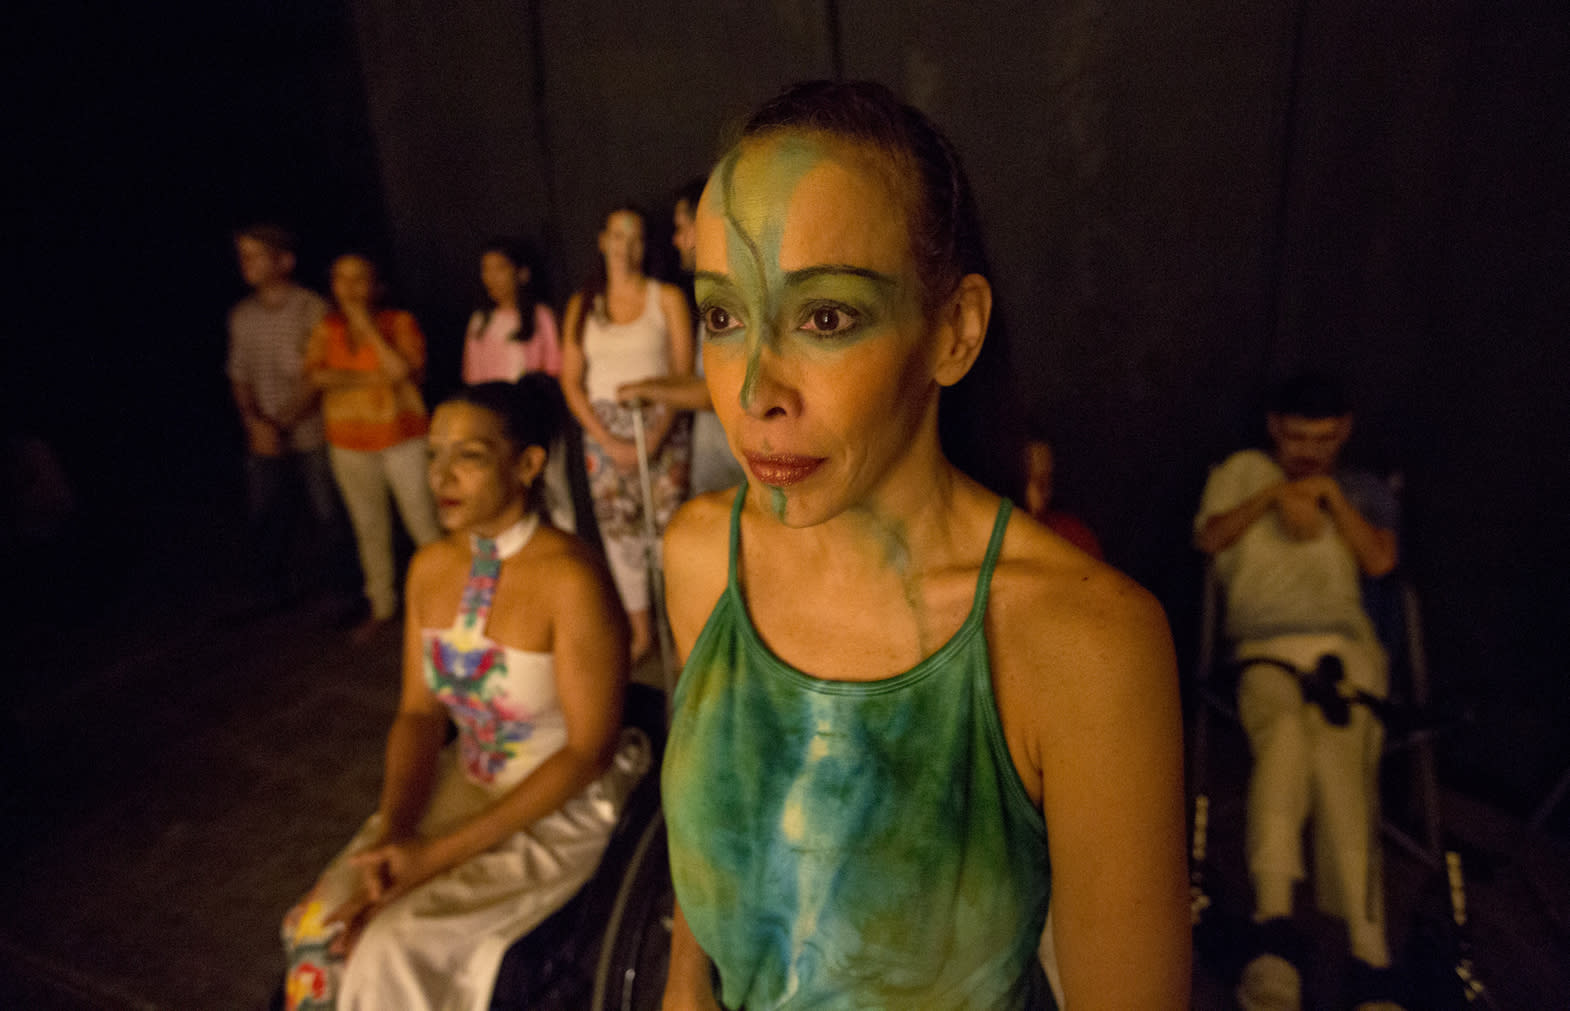 In this Dec. 4, 2018 photo, dancers watch their fellow dancers perform in the contemporary dance production Ubuntu, at the Teresa Carreno Theater in Caracas, Venezuela. During the show, disabled dancers perform alongside fully abled professional dancers to demonstrate that art knows no barriers. (AP Photo/Fernando Llano)